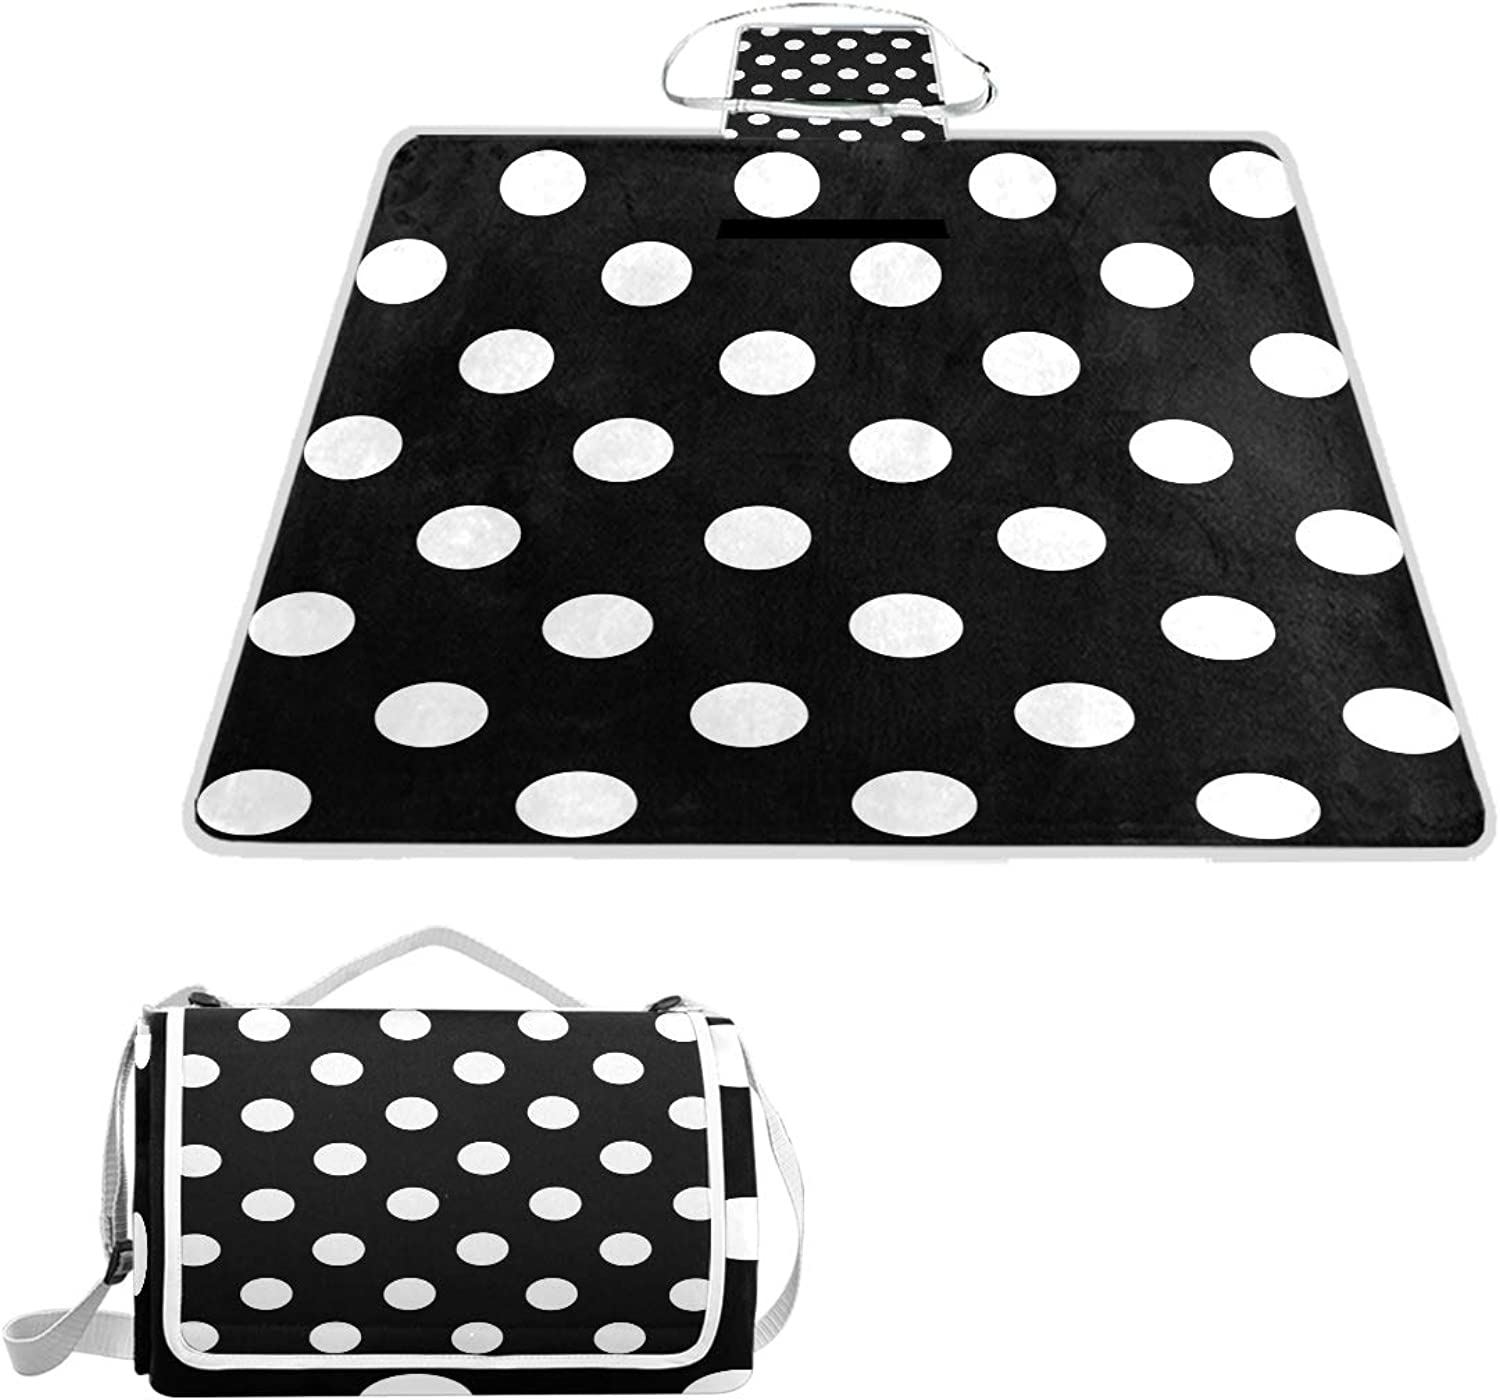 MASSIKOA Black White Dots Picnic Blanket Waterproof Outdoor Blanket Foldable Picnic Handy Mat Tote for Beach Camping Hiking